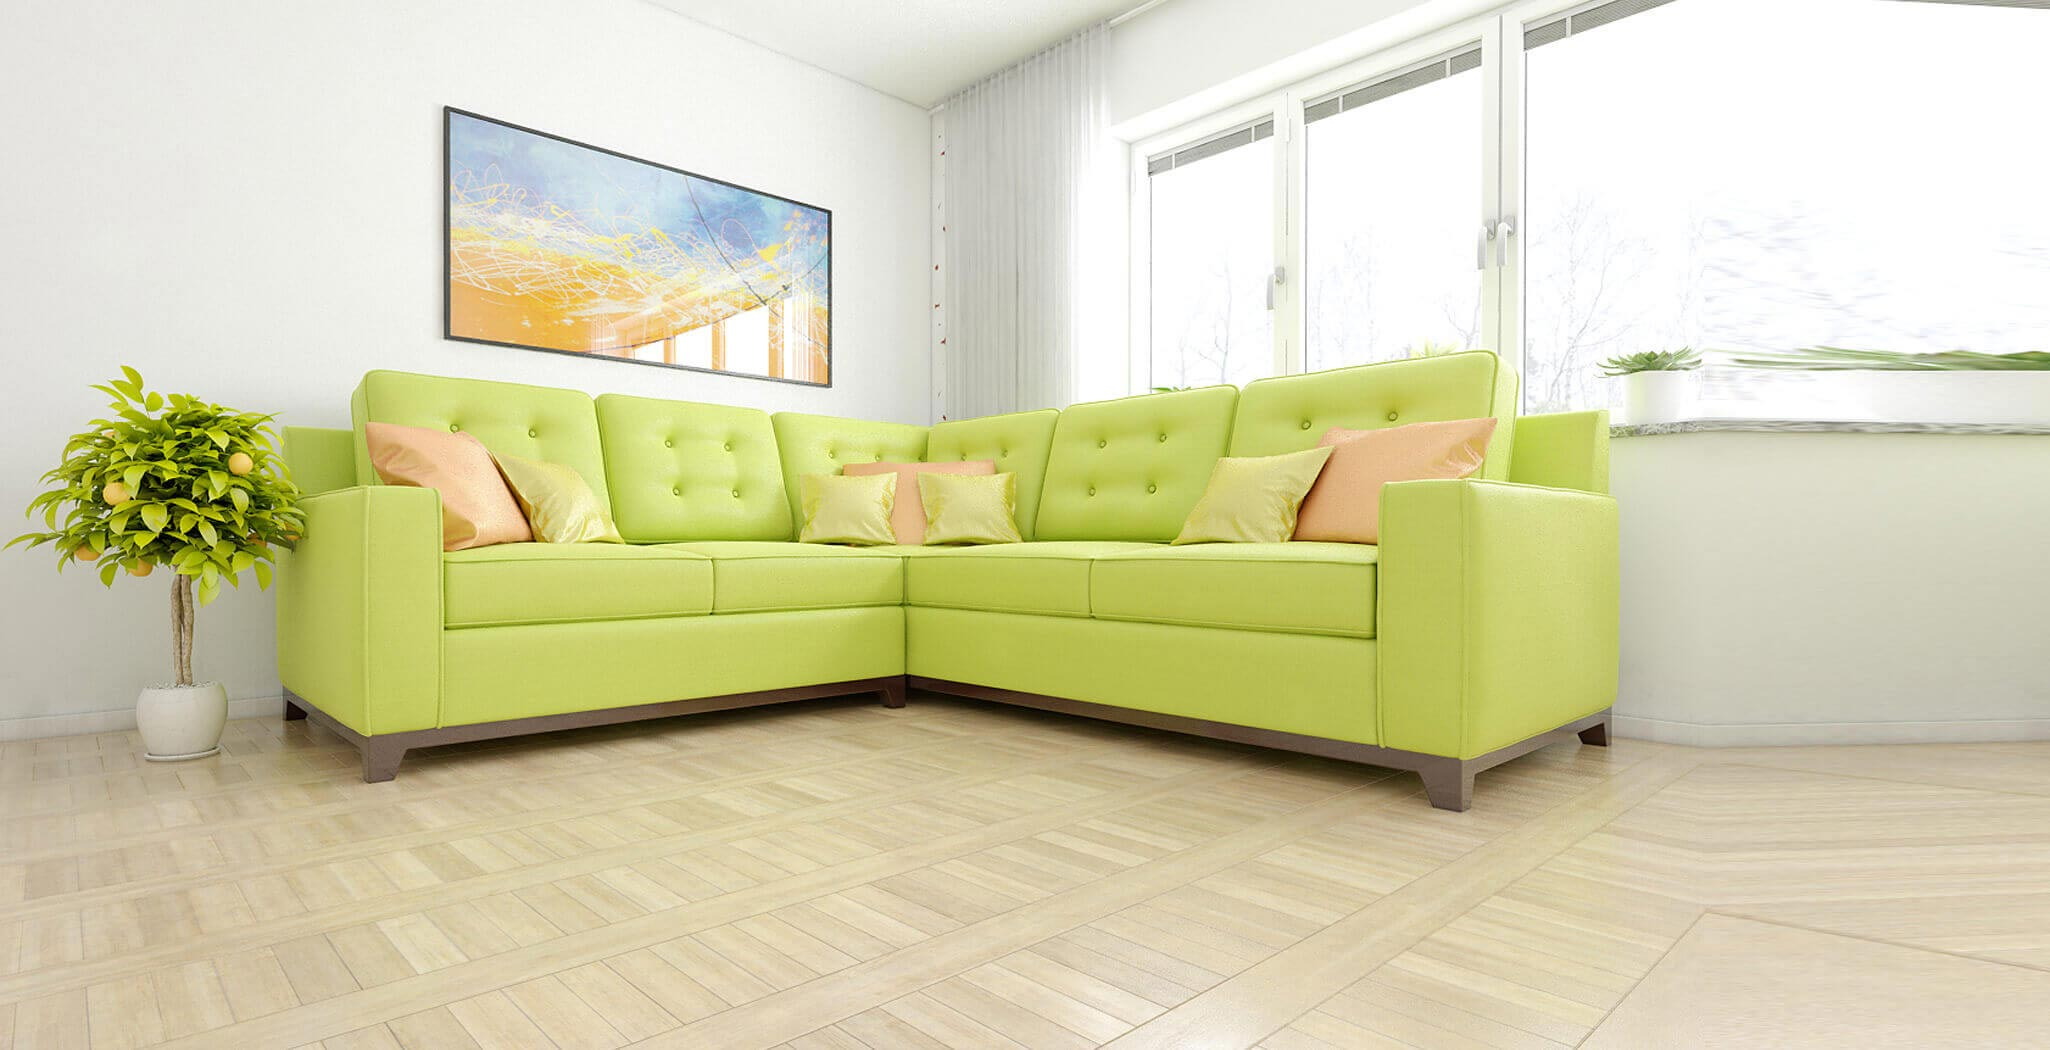 alexandria sectional furniture gallery 3